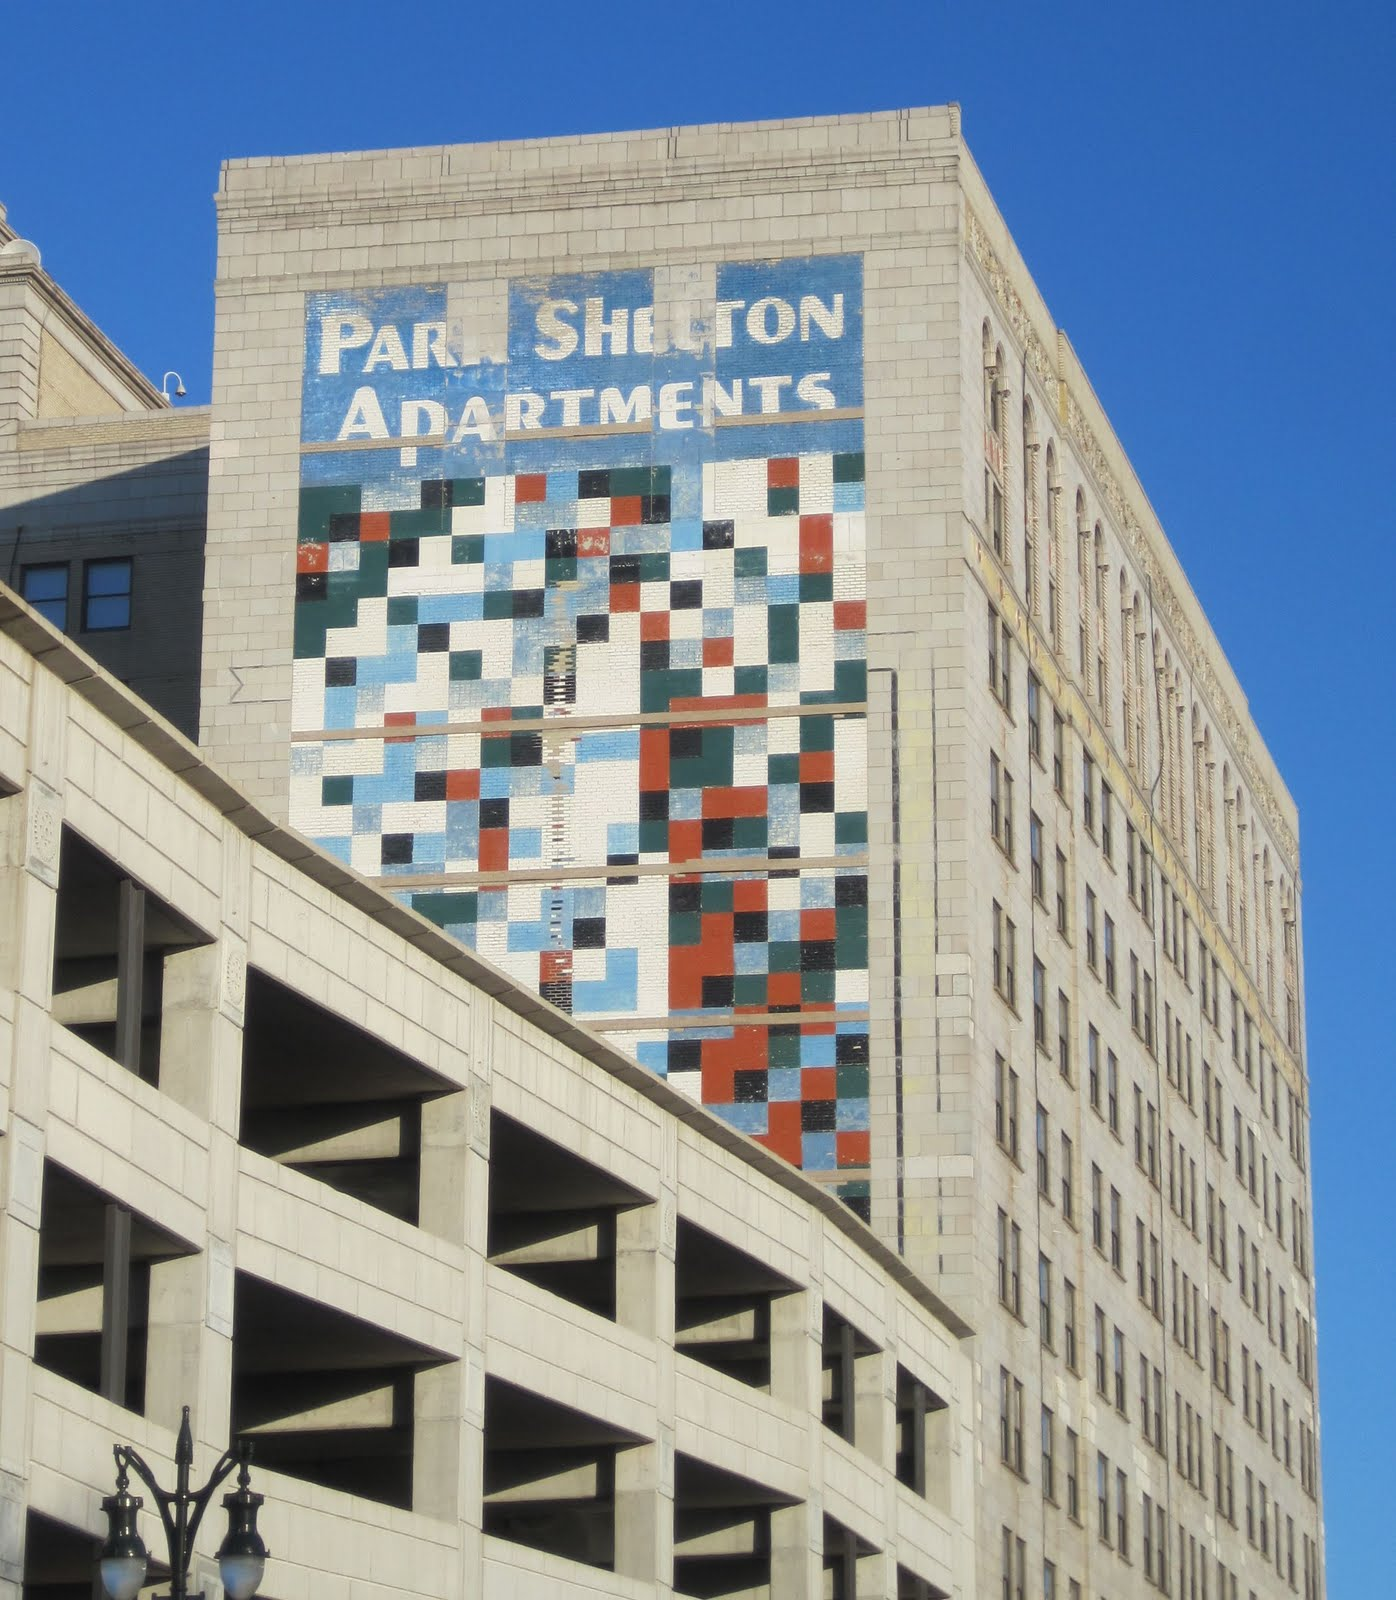 Remembering 39 color cubes 39 downtown detroit 39 s lost public for Mural on building